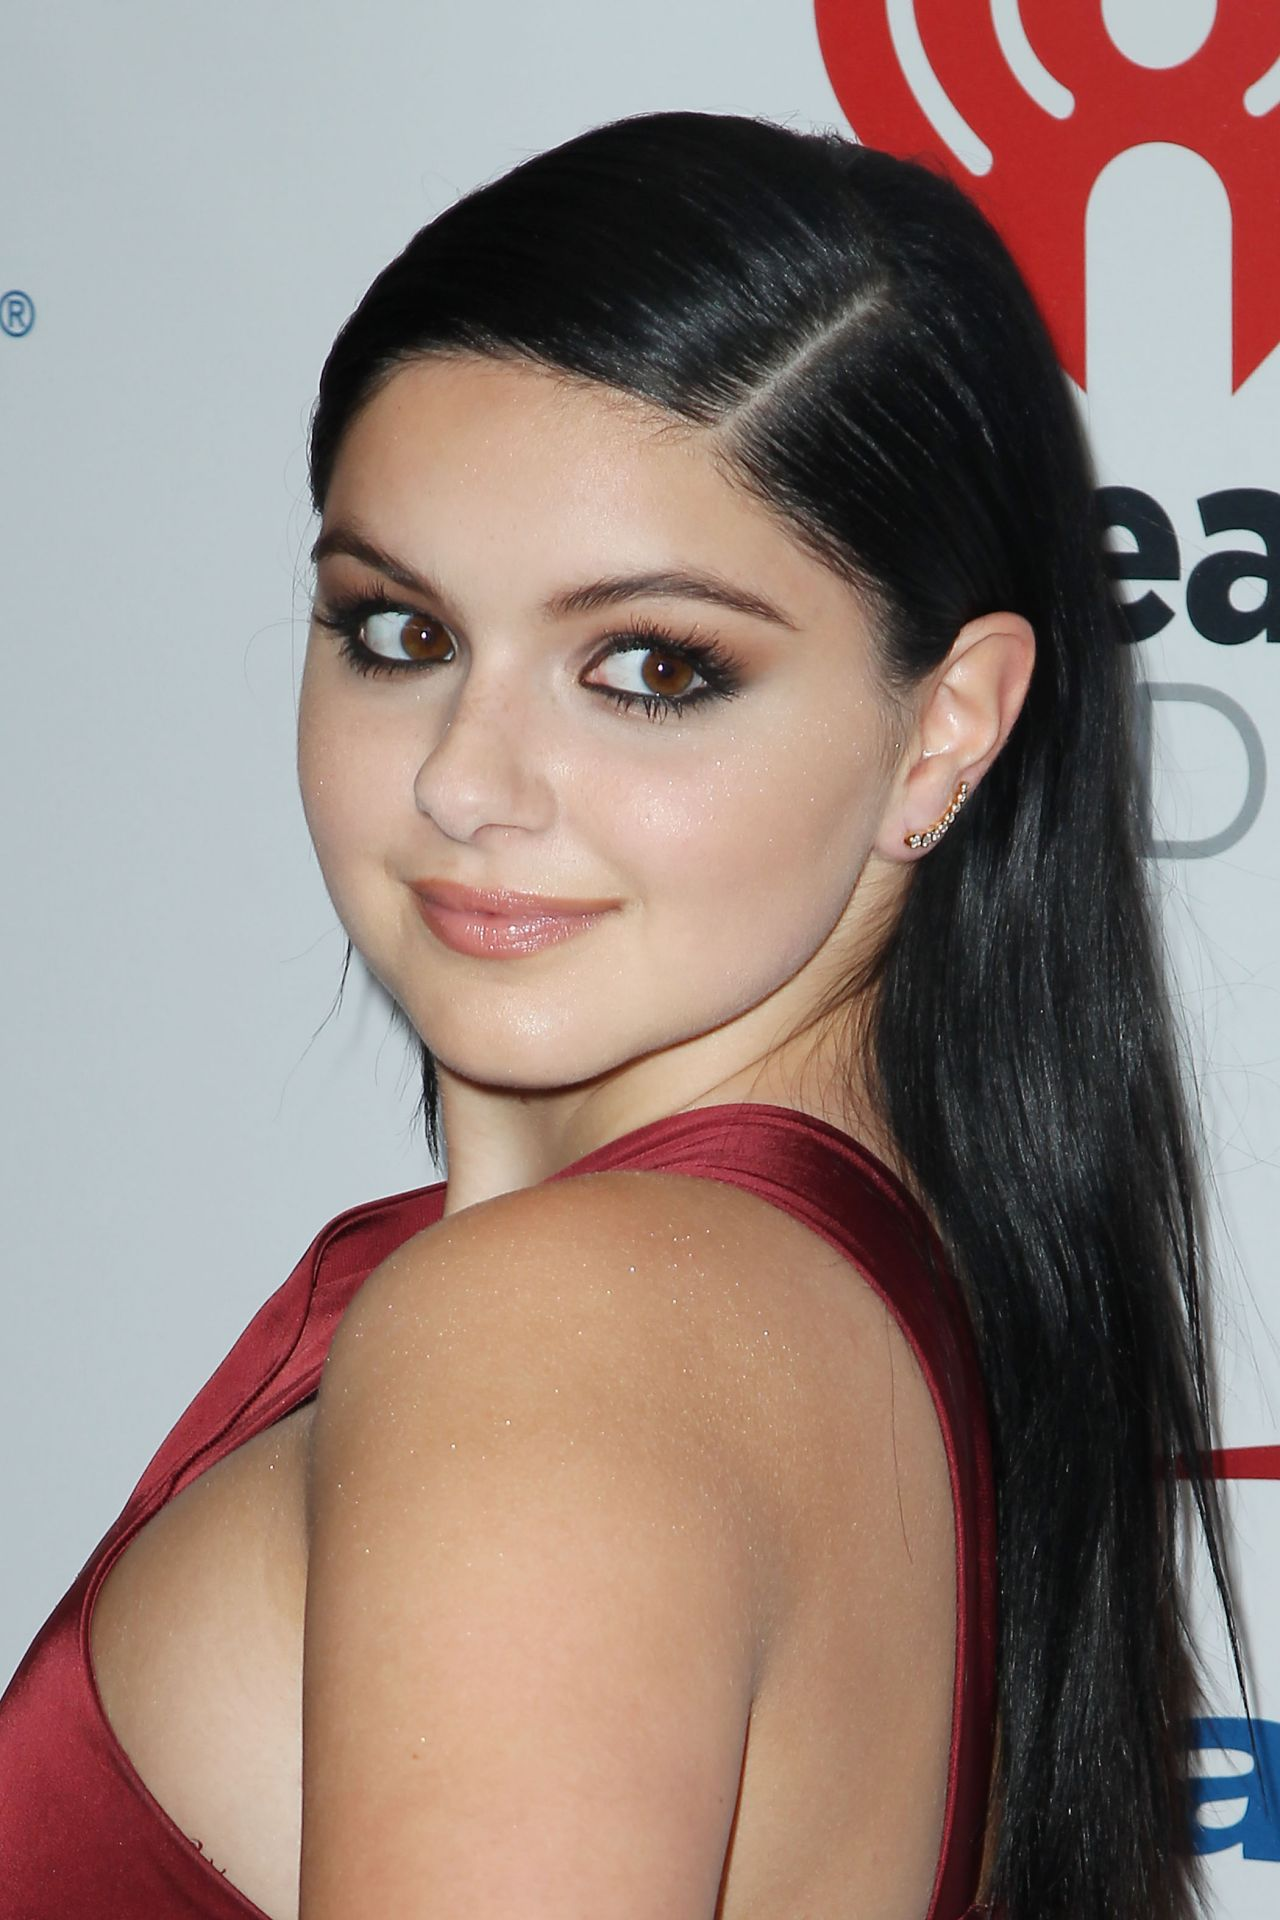 Ariel Winter Z100 Jingle Ball 2015 In New York City 12